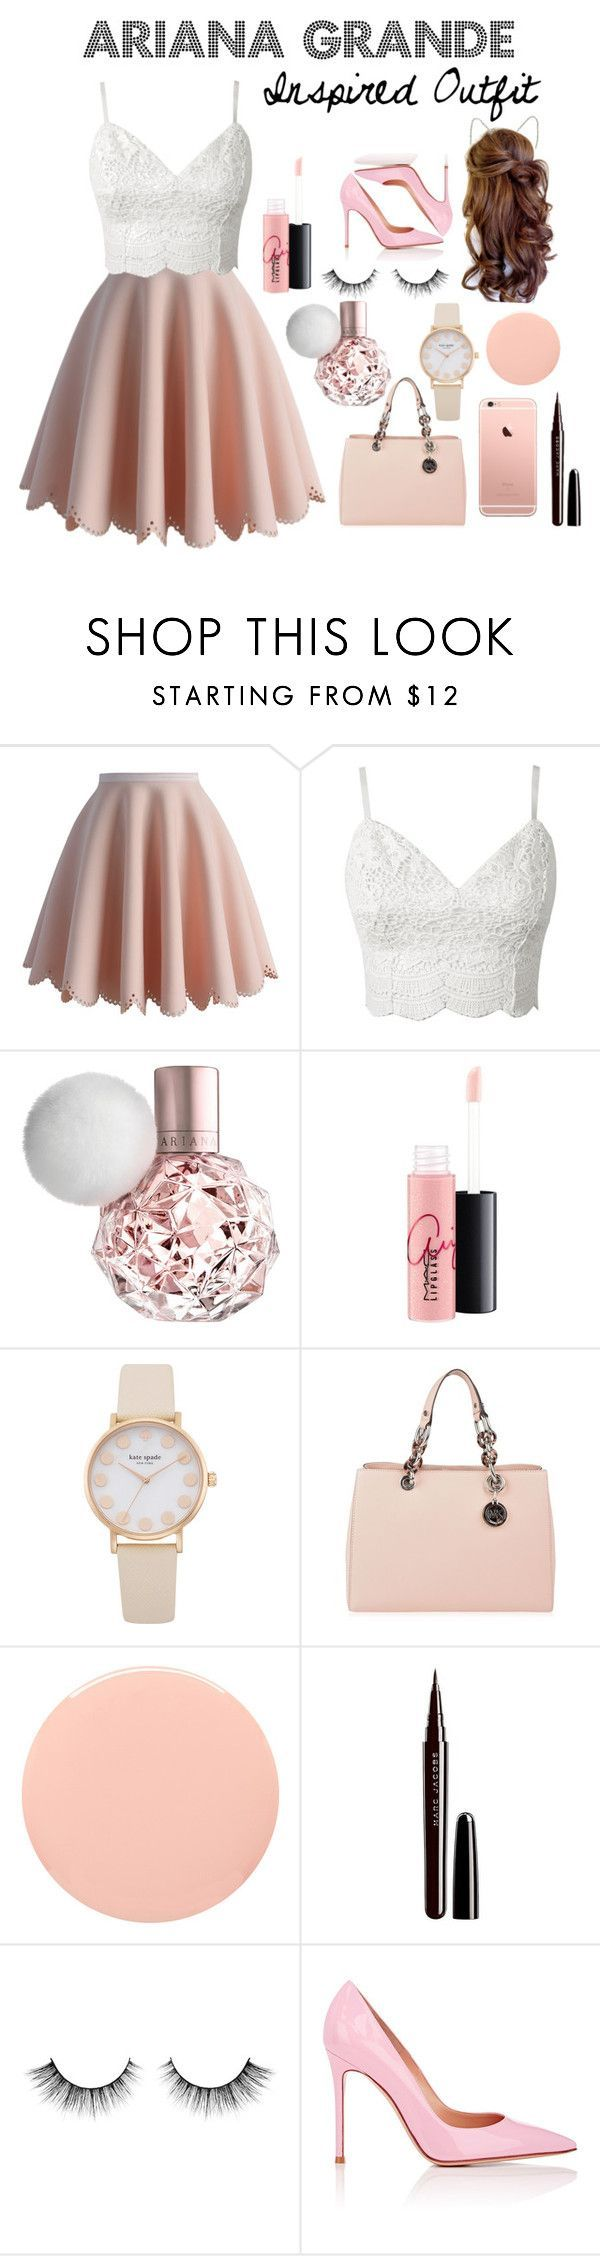 """Ariana Grande Inspired Outfit"" by victoriafiocco ❤ liked on Polyvore featuring Chicwish, MAC Cosmetics, MICHAEL Michael Kors, Smith & Cult, Marc Jacobs, Gianvito Rossi, women's clothing, women, female and woman"